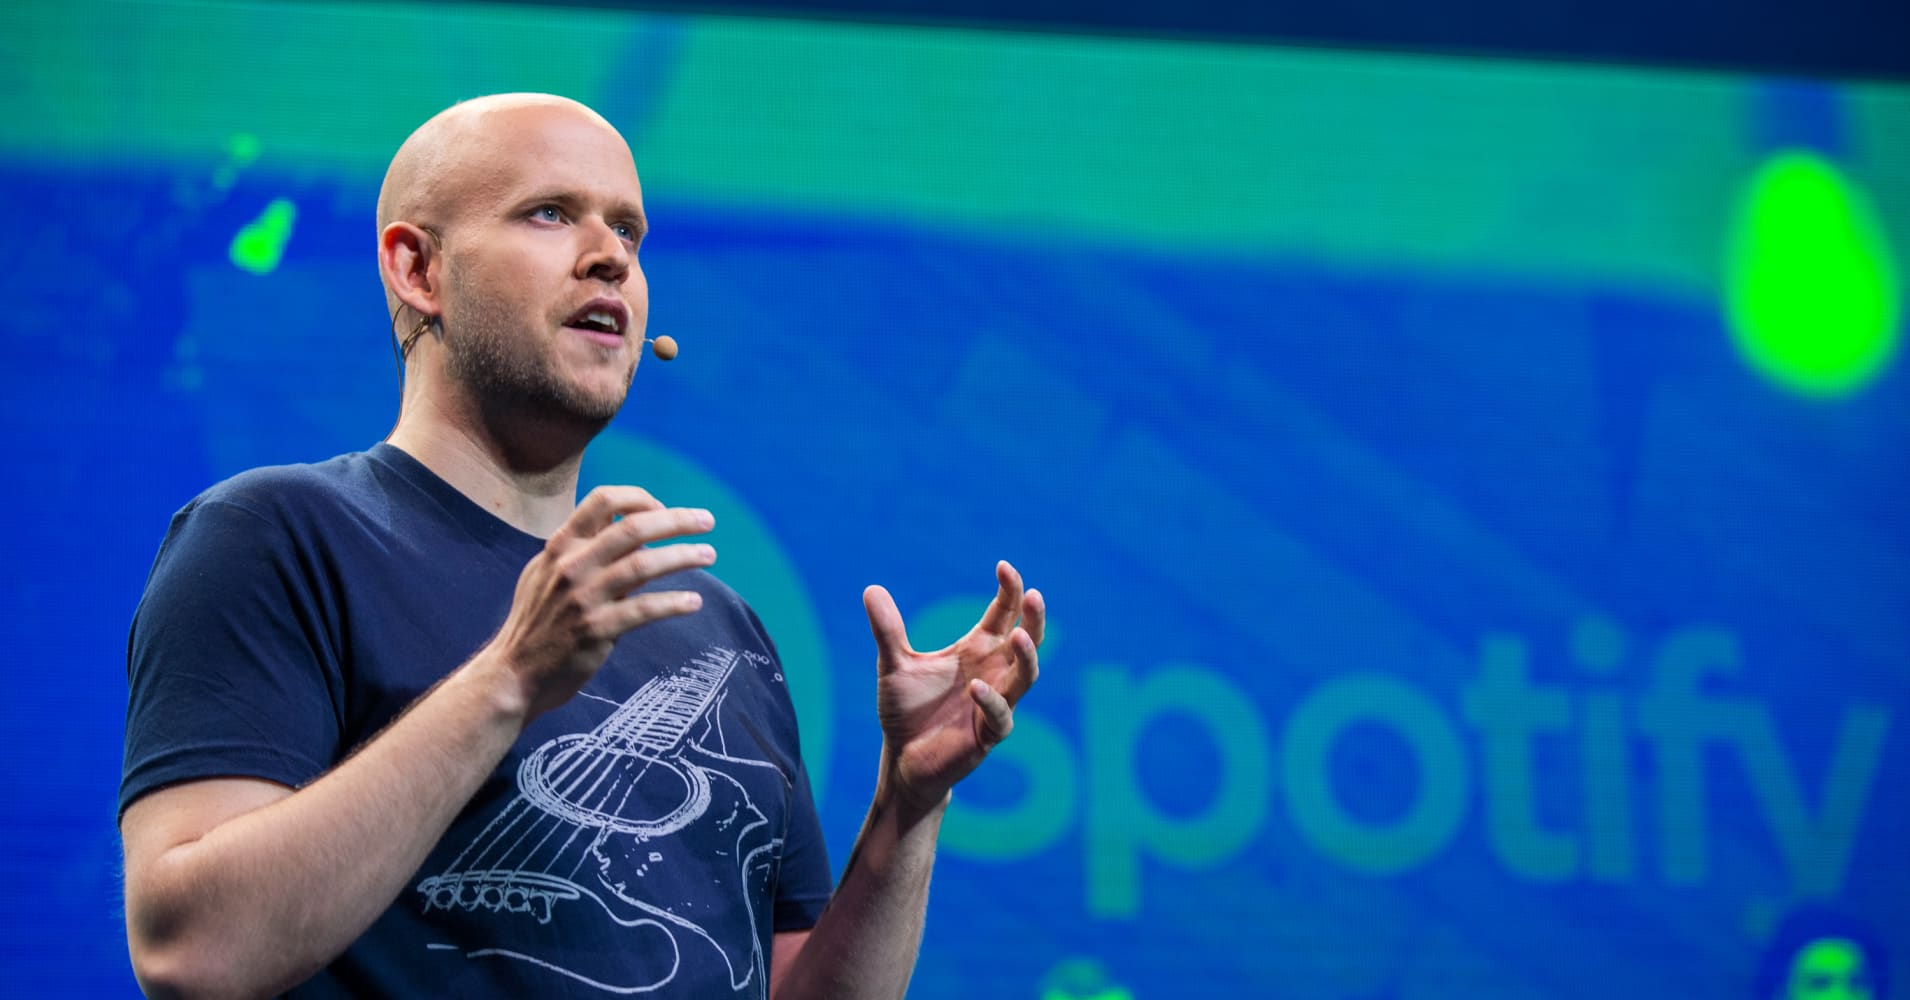 Spotify to do direct listing on NYSE later this year or early 2018: Sources